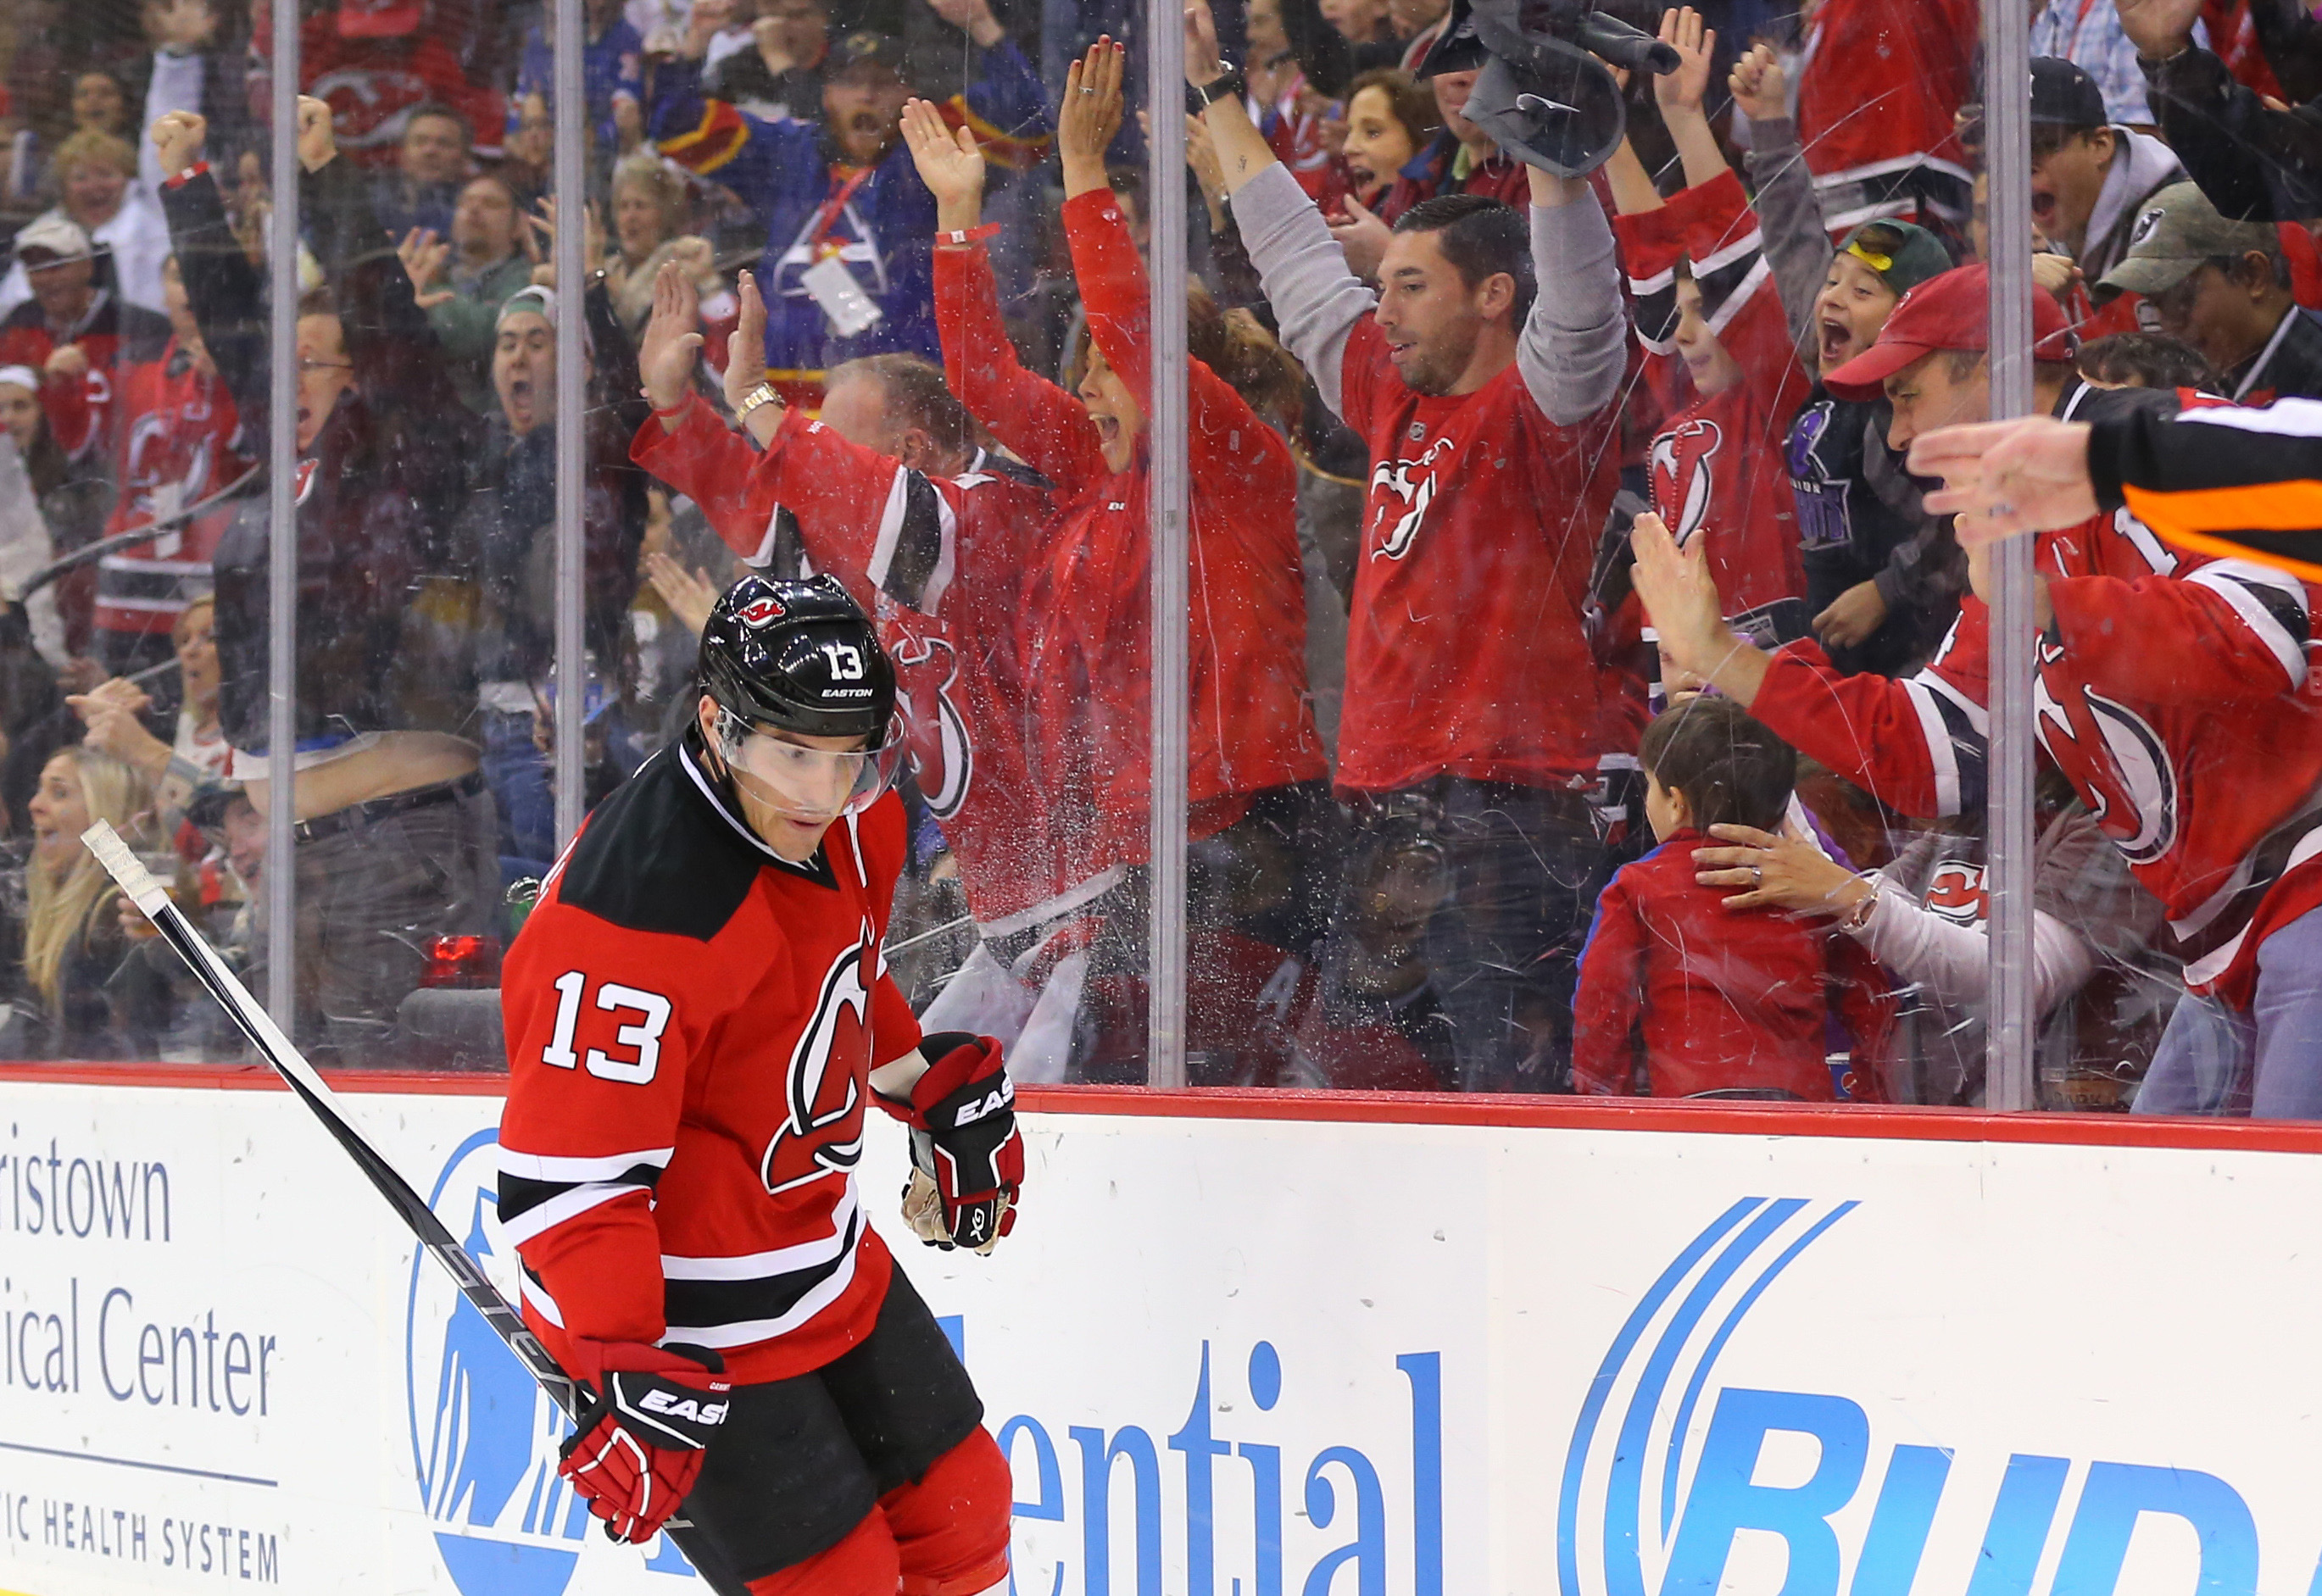 A lot of these people paid quite a lot of money to sit against the glass this season and go wild when a Devil (Mike Cammalleri here) scores a goal.